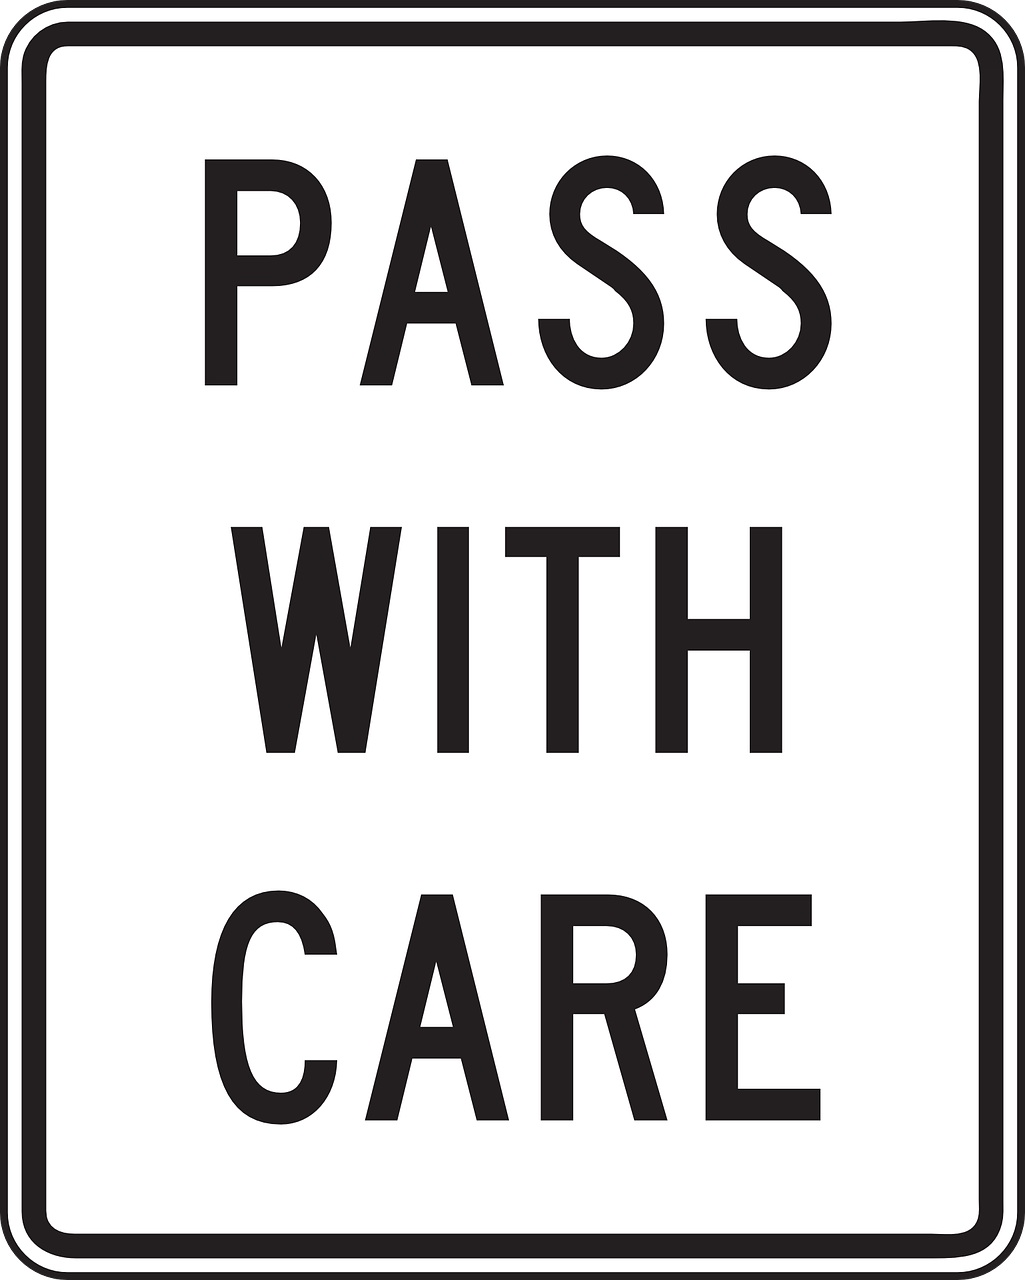 passwithcare